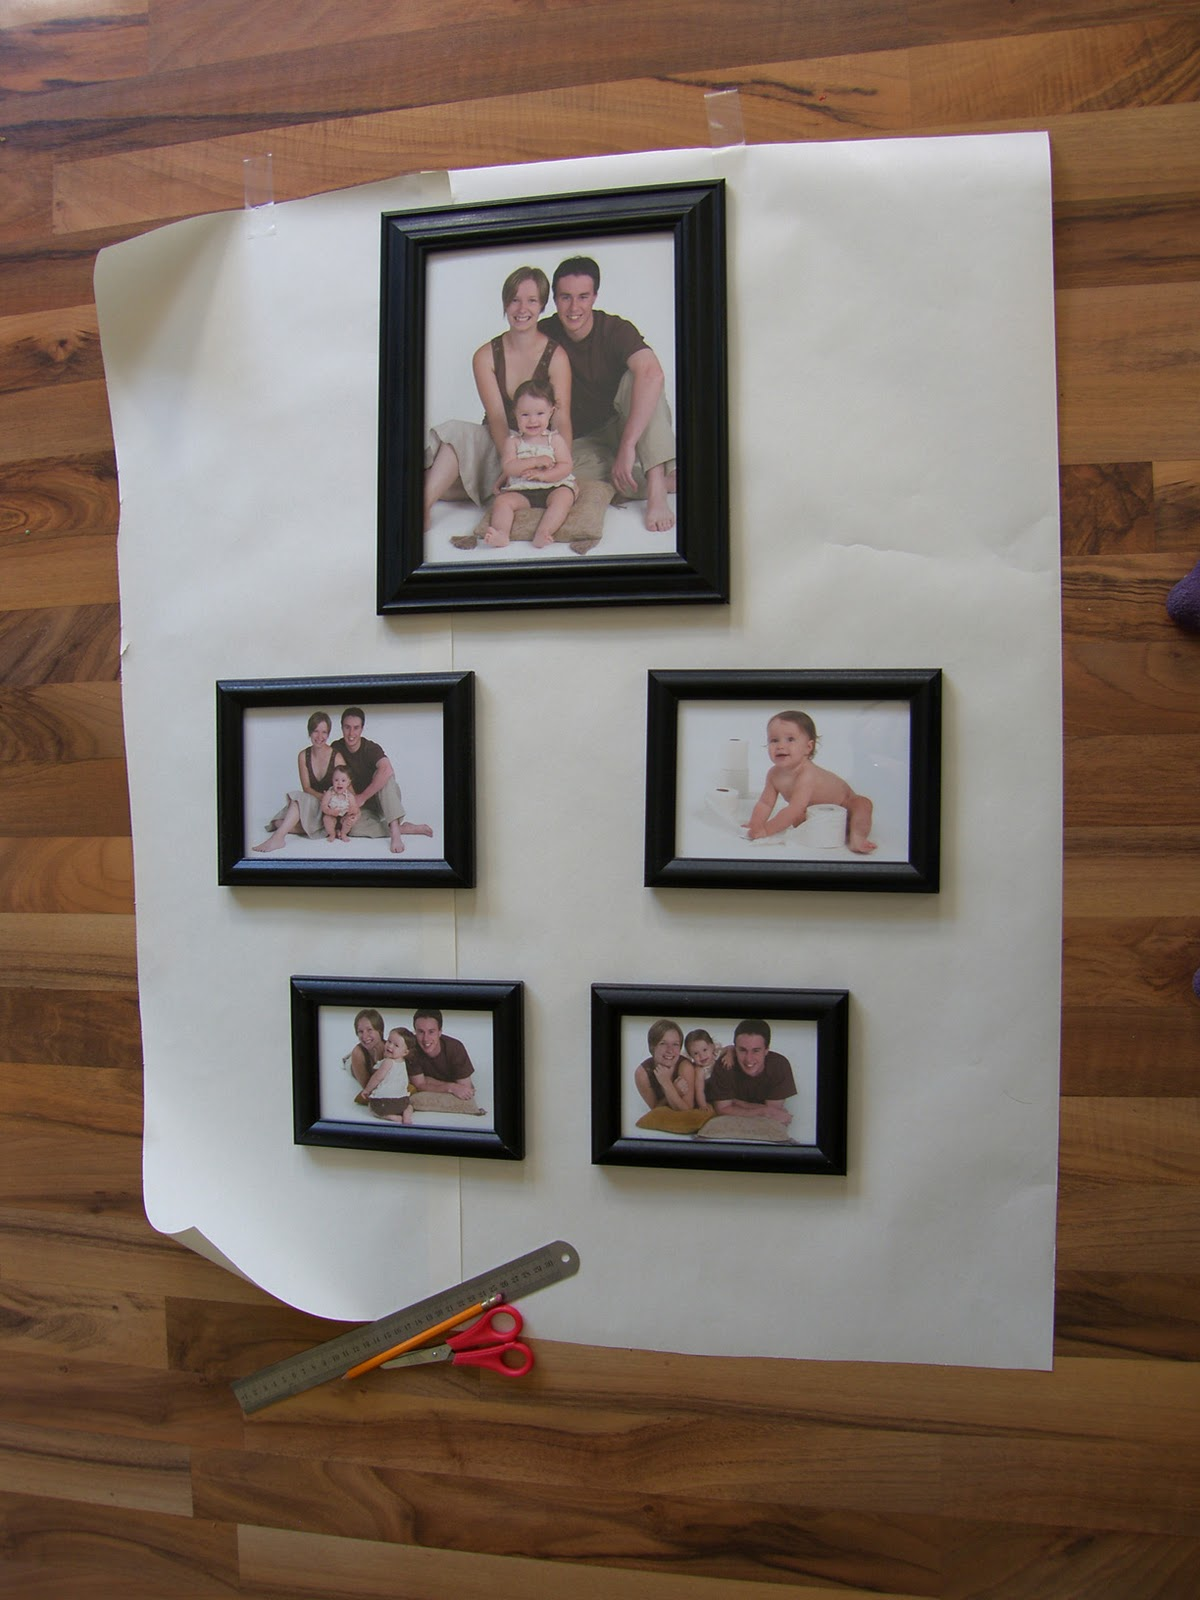 How To Hang Multiple Pictures On Wall how to hang multiple frames!!! - the diy dreamer